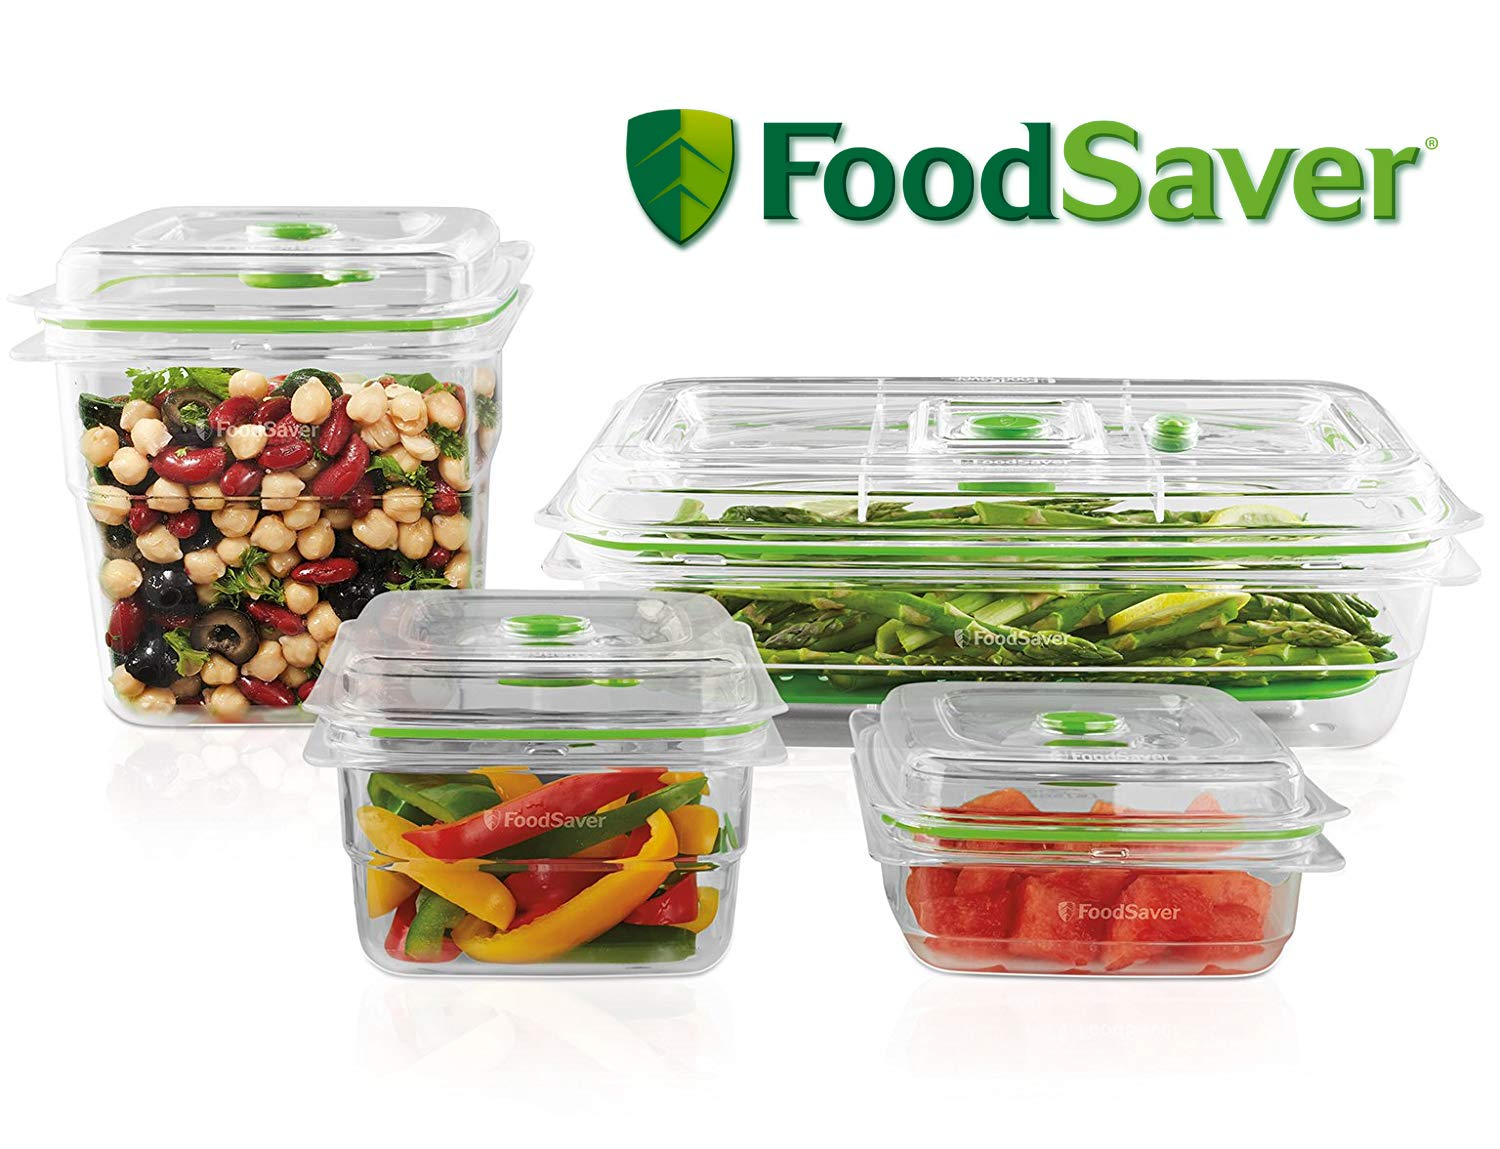 FoodSaver B01AJJ1WNA FA4SC35810-000 Fresh Vacuum Seal Food and Storage Containers, 4-Piece Set and 2 Produce Trays, Clear, Multi